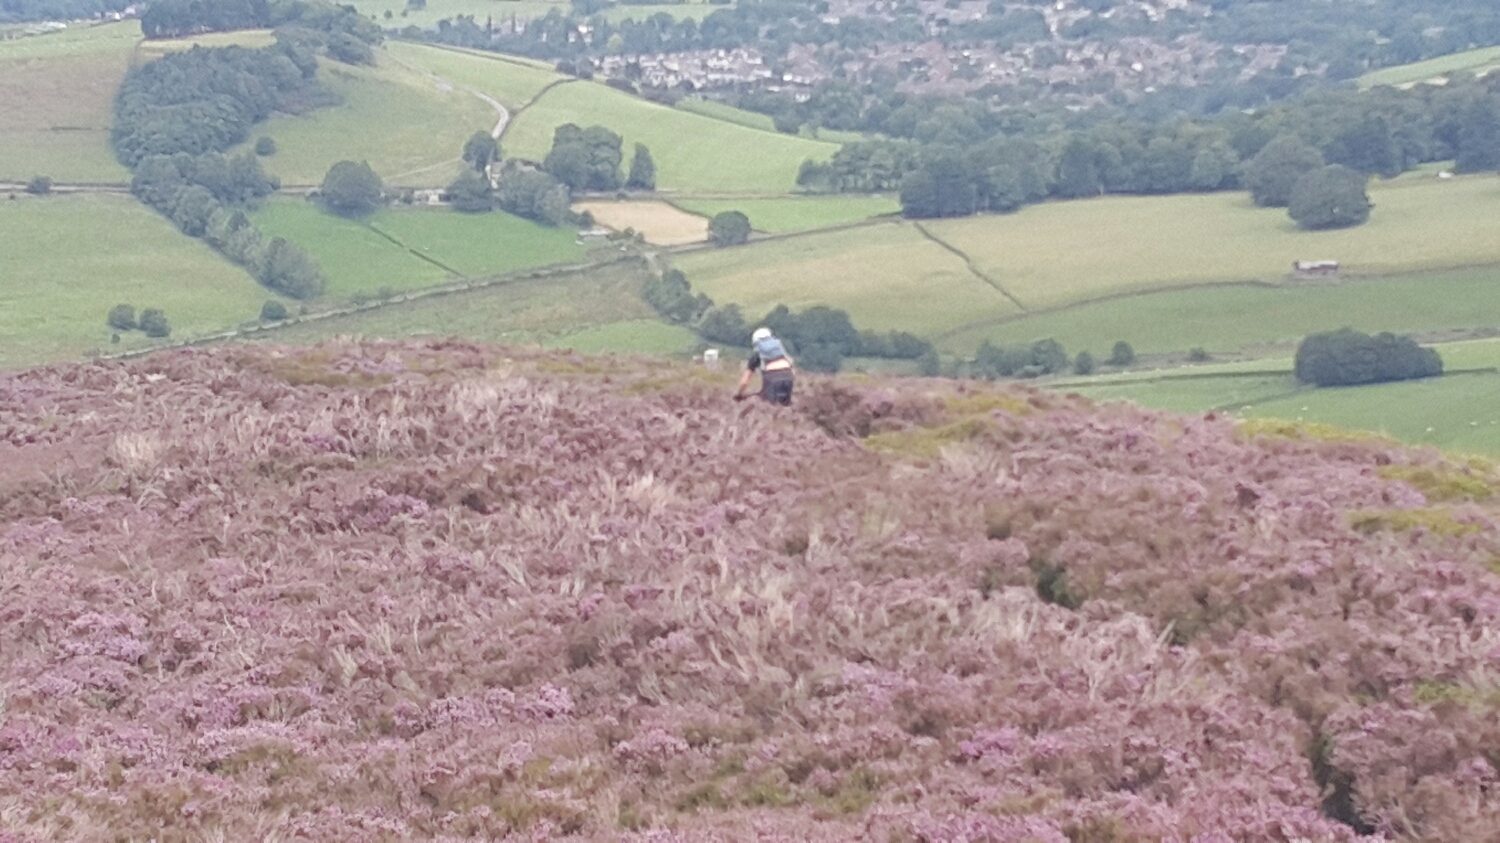 On our way back down. Pete snaking down though the heather.